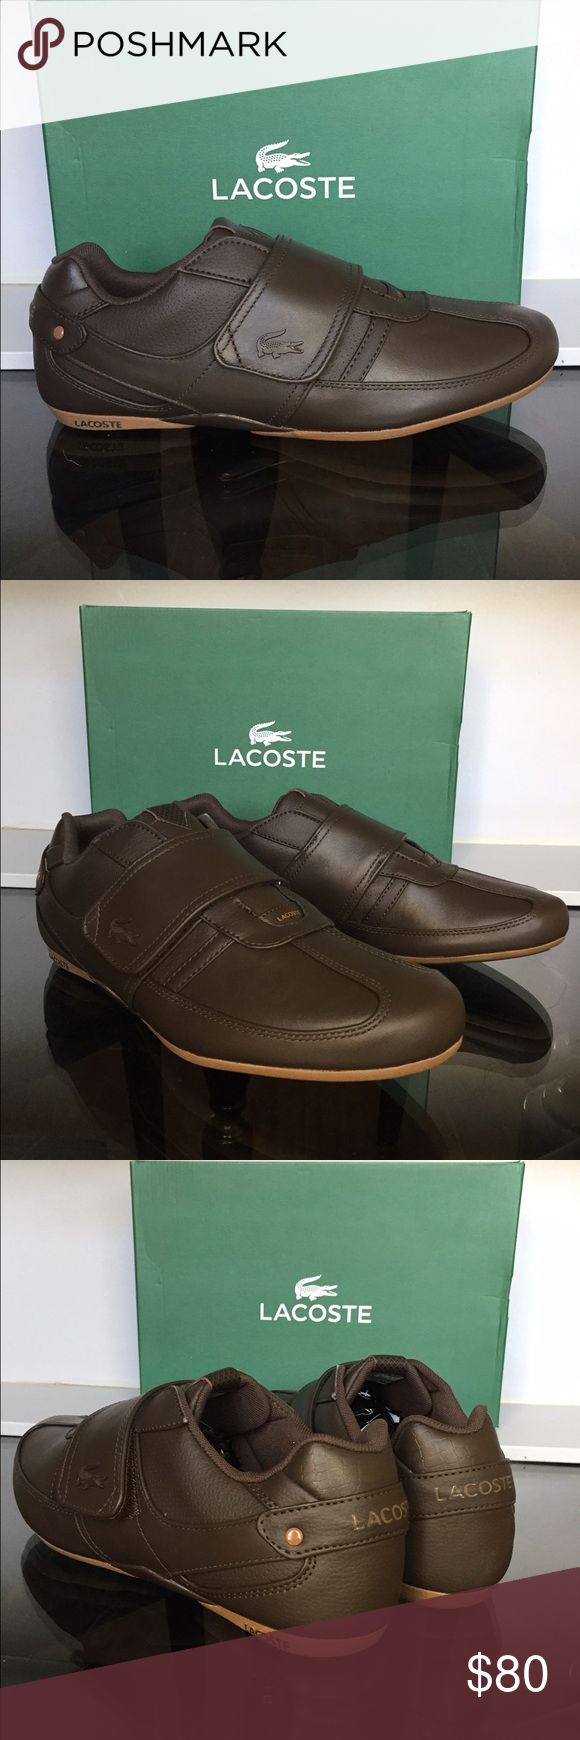 Lacoste PRM men's Brand new and with the original box. Lacoste Shoes Loafers & Slip-Ons